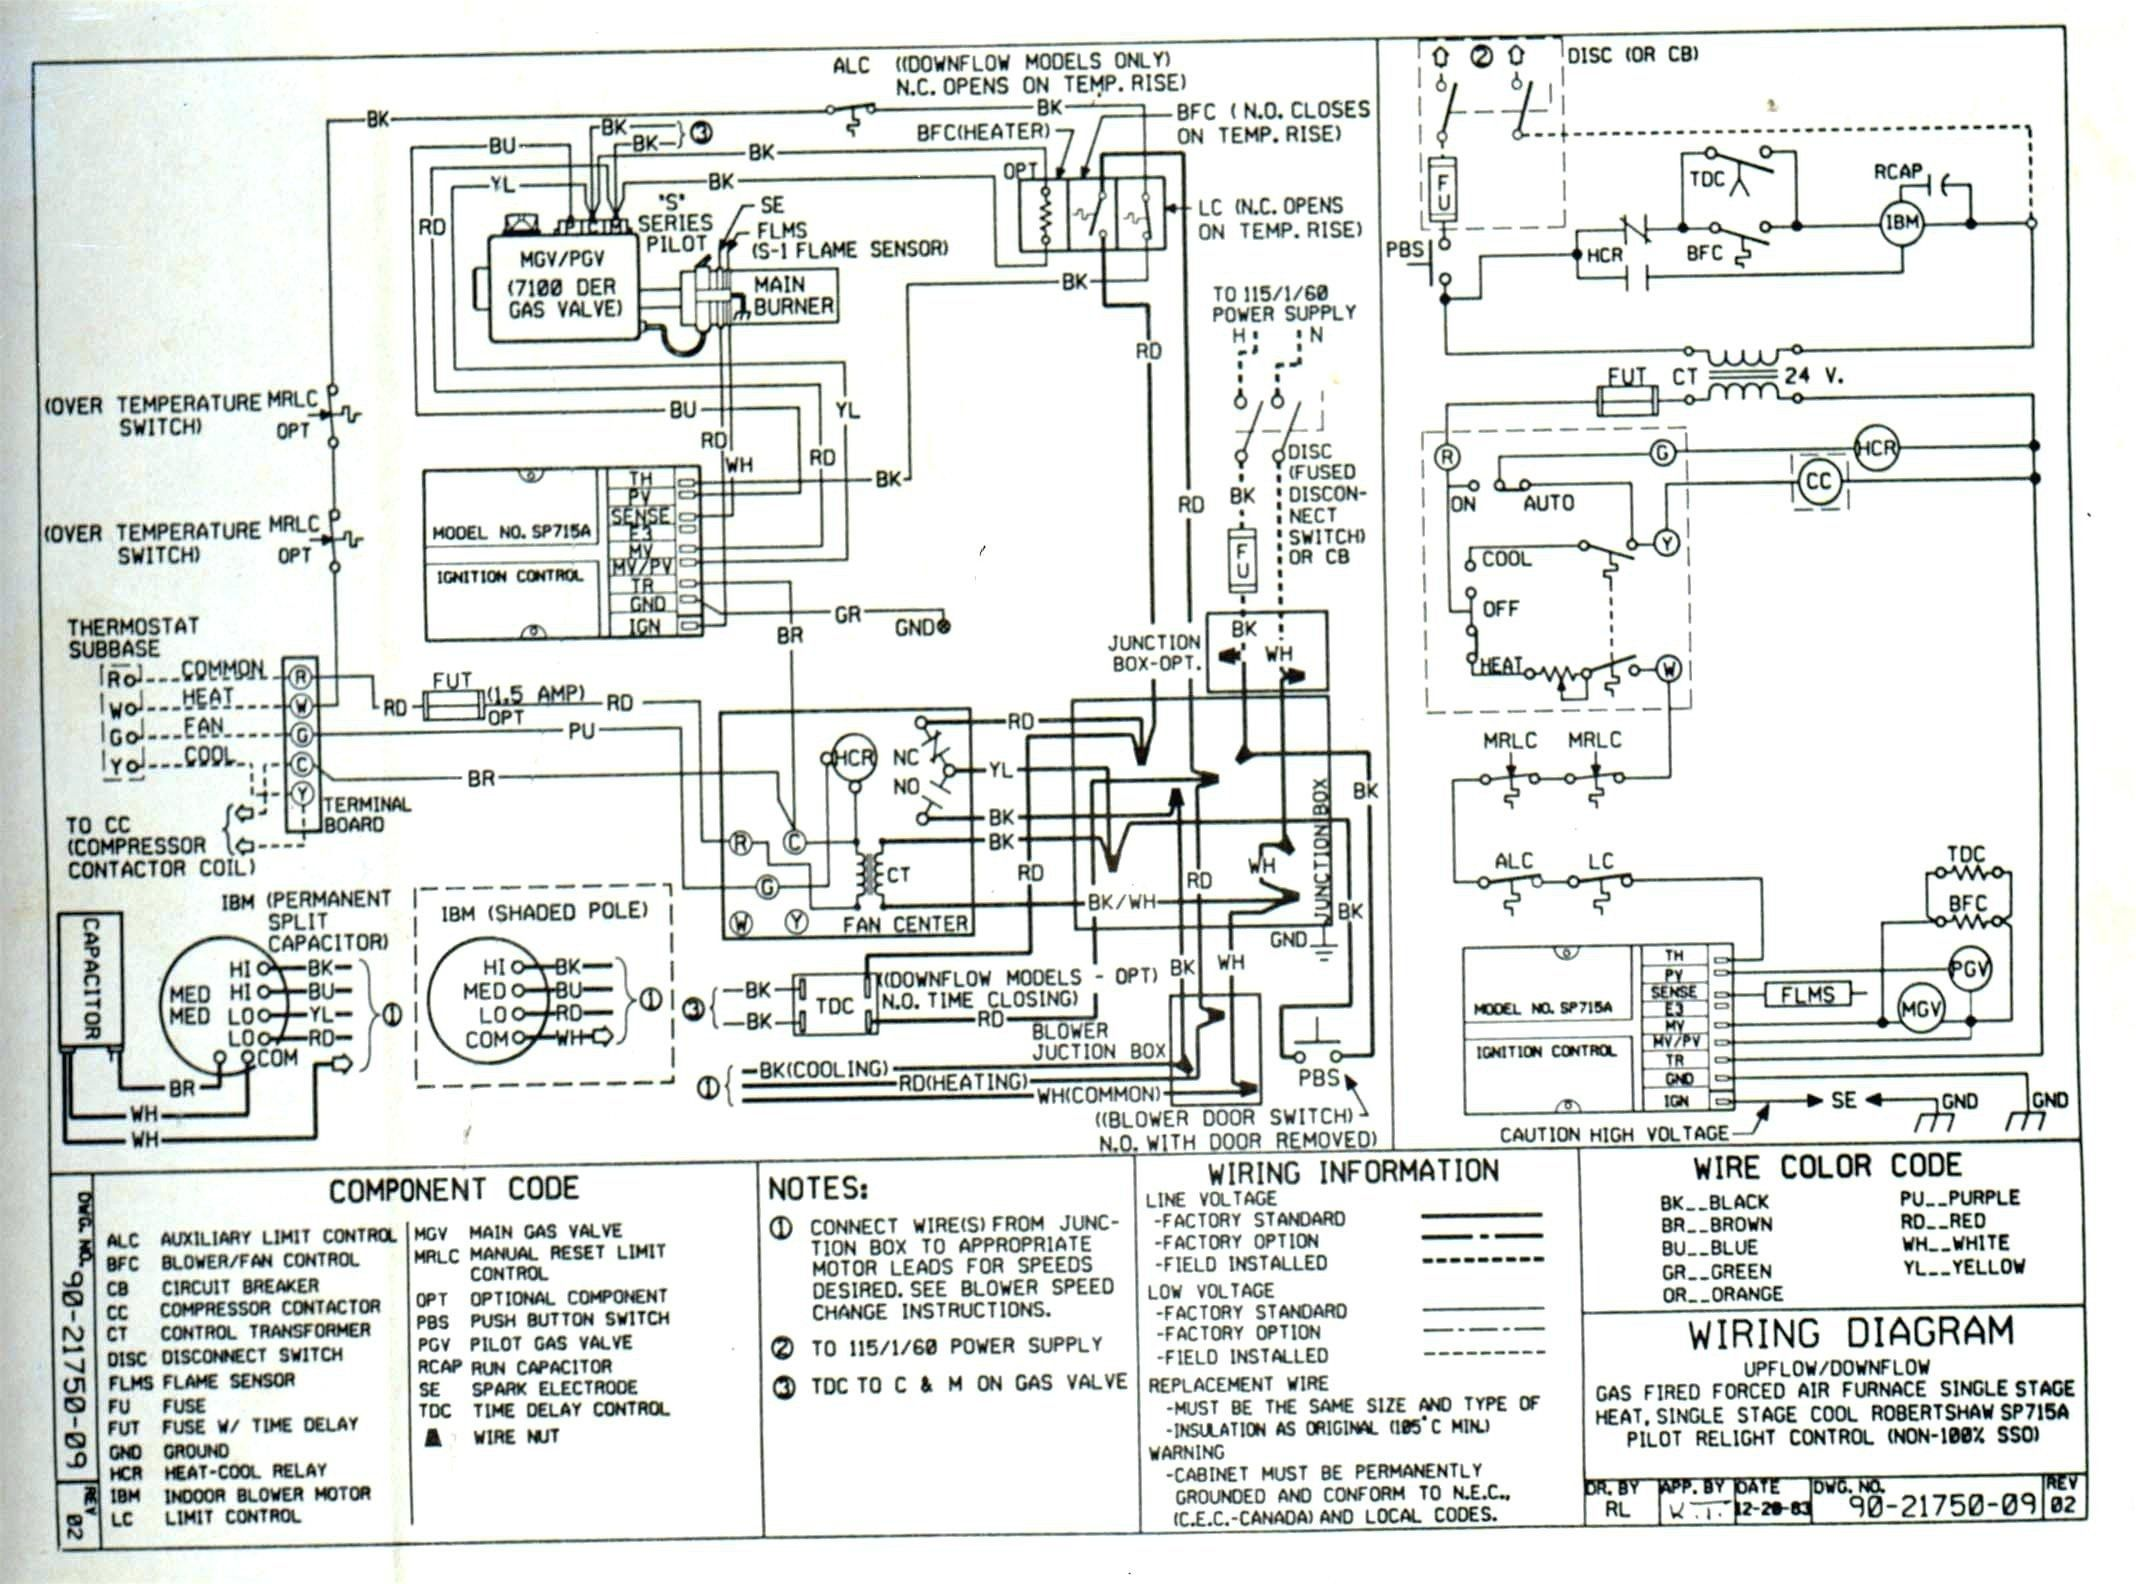 hight resolution of trane bwv724a100d1 air handler wiring diagram simple wiring diagrams trane twe air handler wiring diagram trane bwv724a100d1 air handler wiring diagram